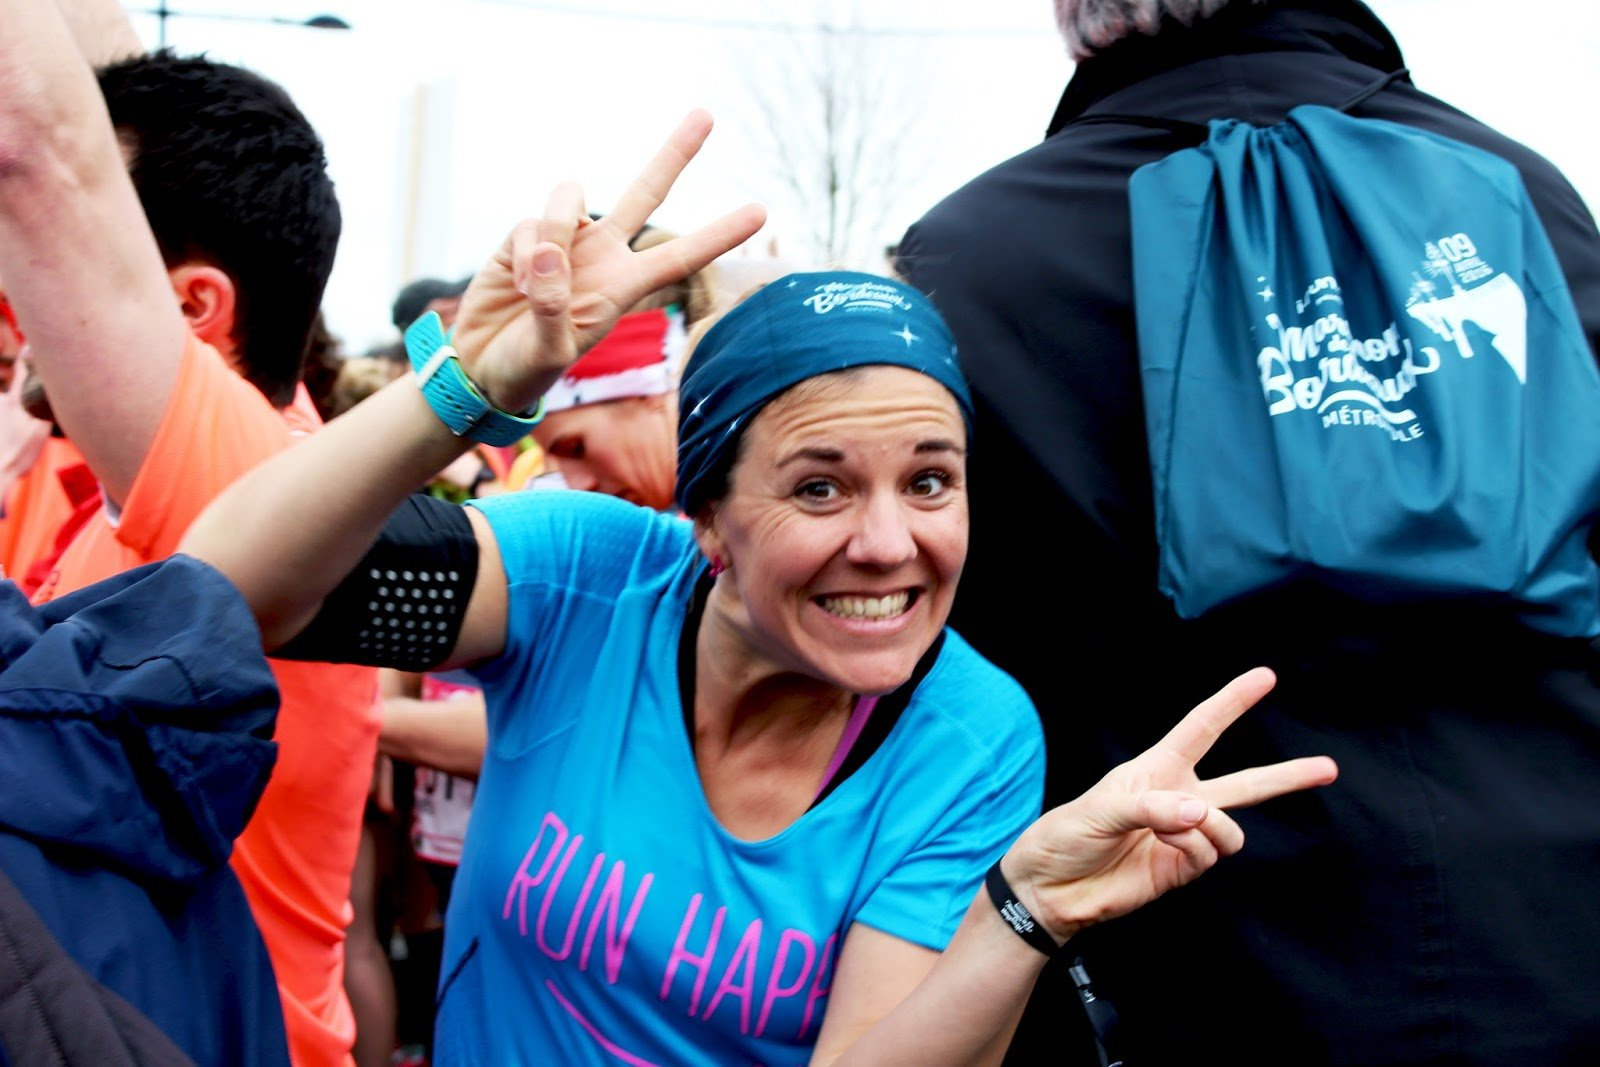 run happy bordeaux